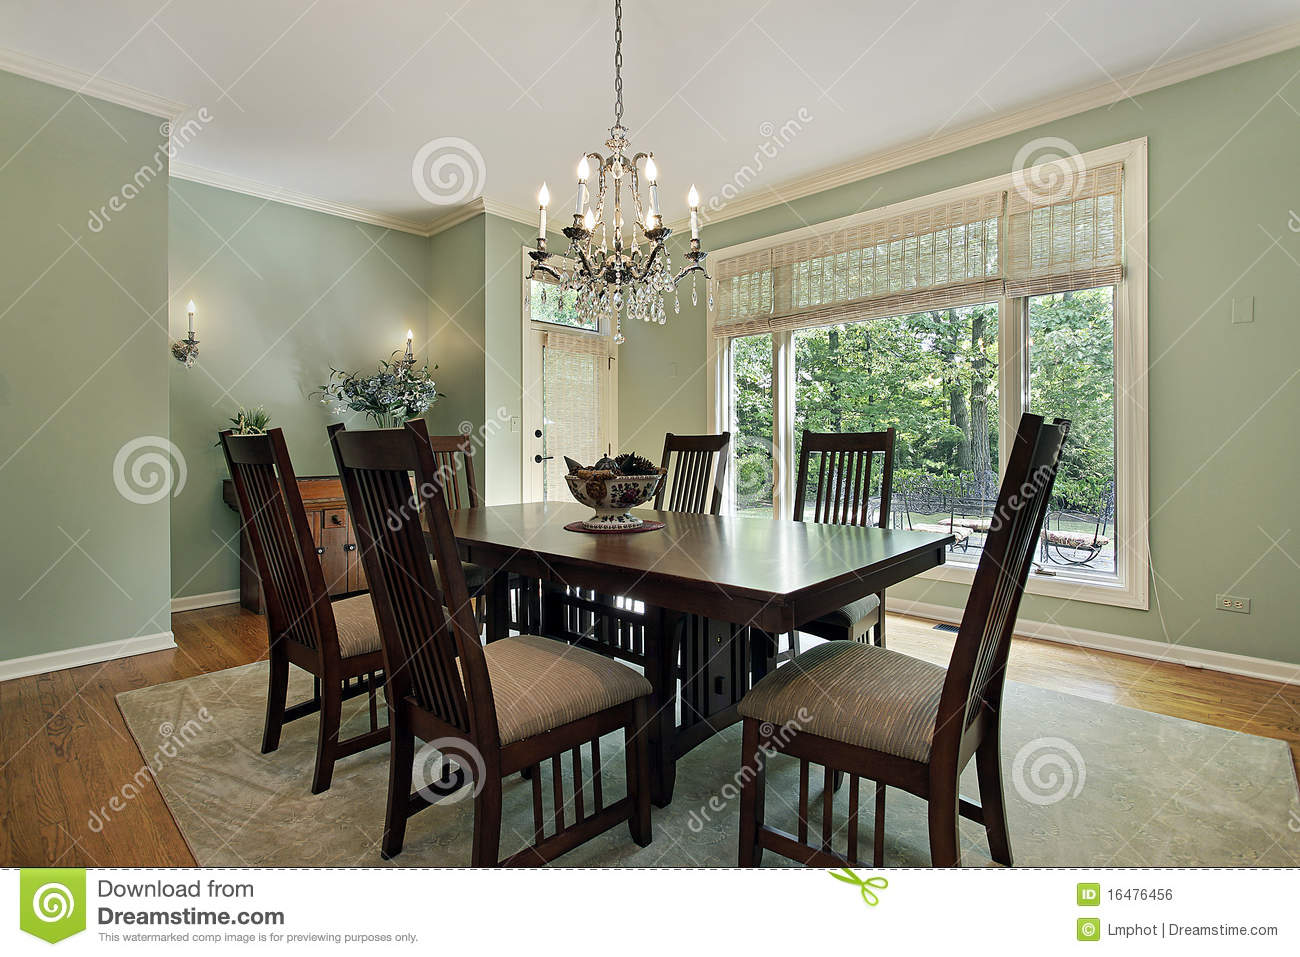 Rooms With Green Walls Pleasing Of Dining Room with Green Walls Image